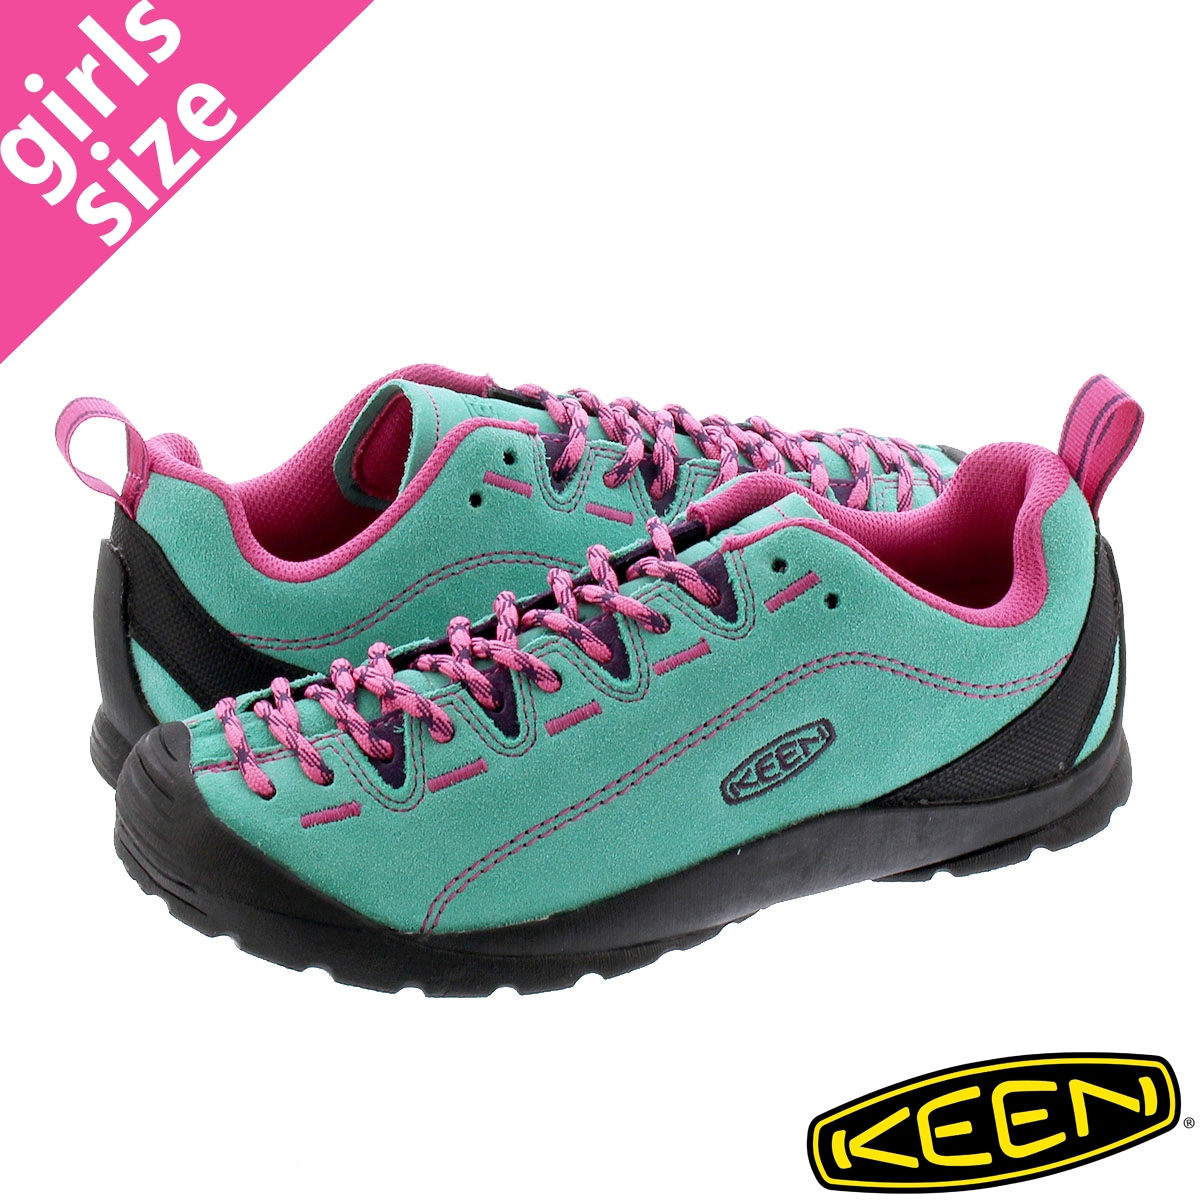 KEEN WOMEN JASPER 【レディース】 キーン ウーマン ジャスパー DUSTY JADE GREEN/FUCHSIA PINK 1022820